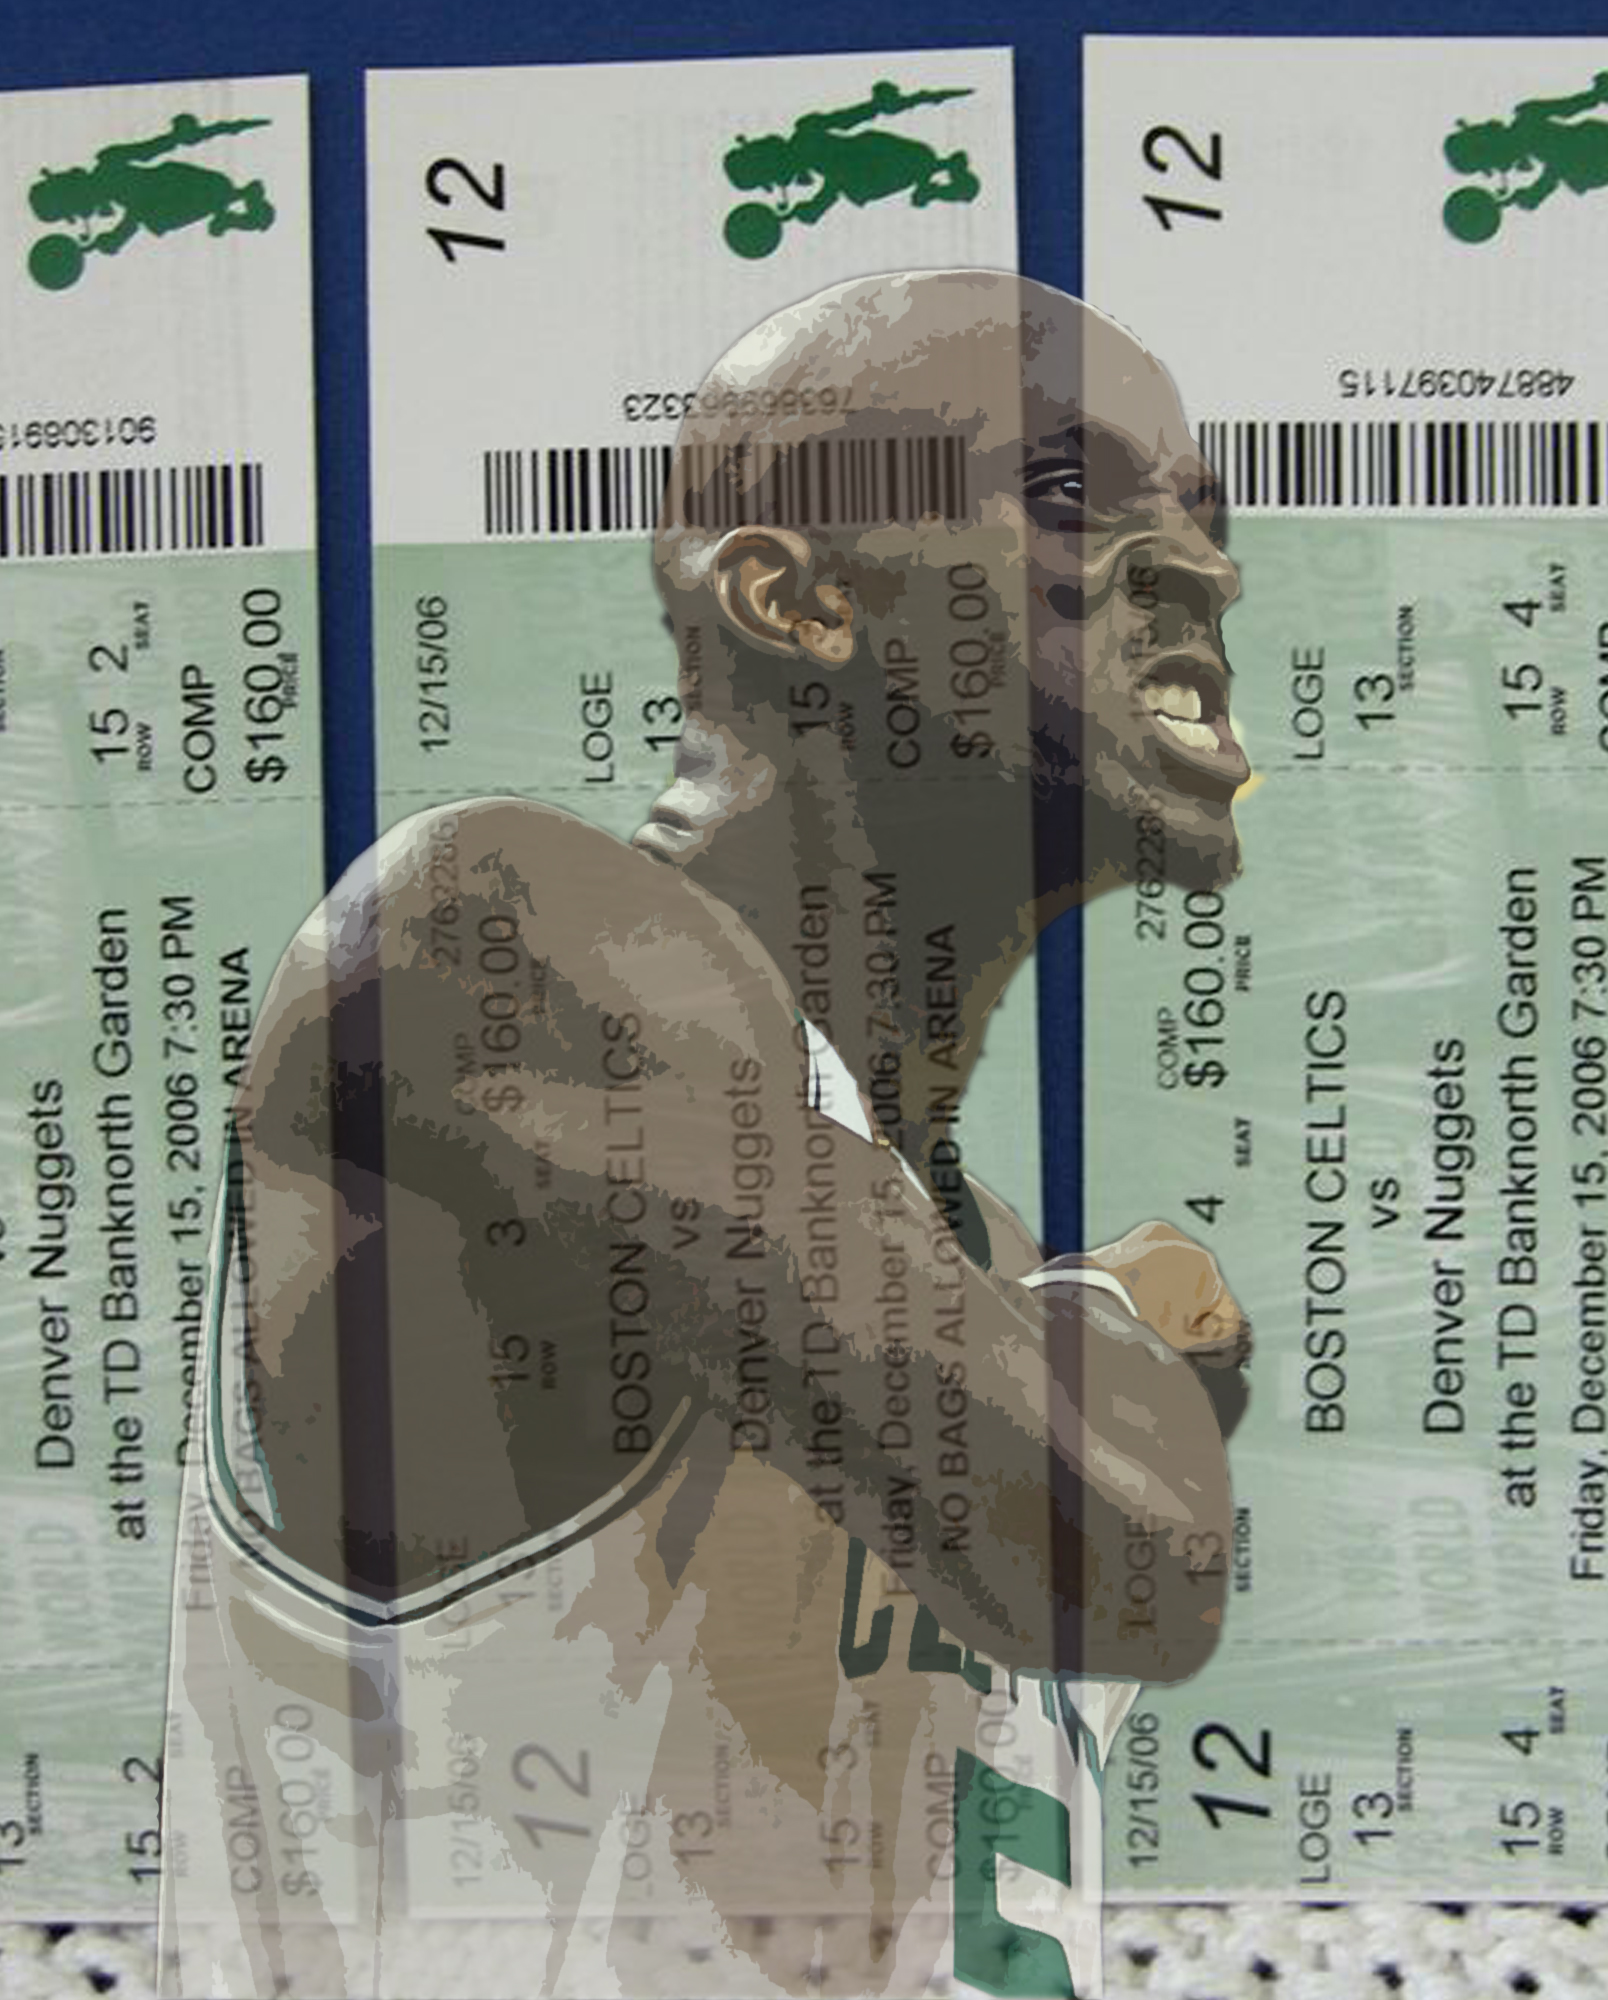 The Big Ticket Kevin Garnett